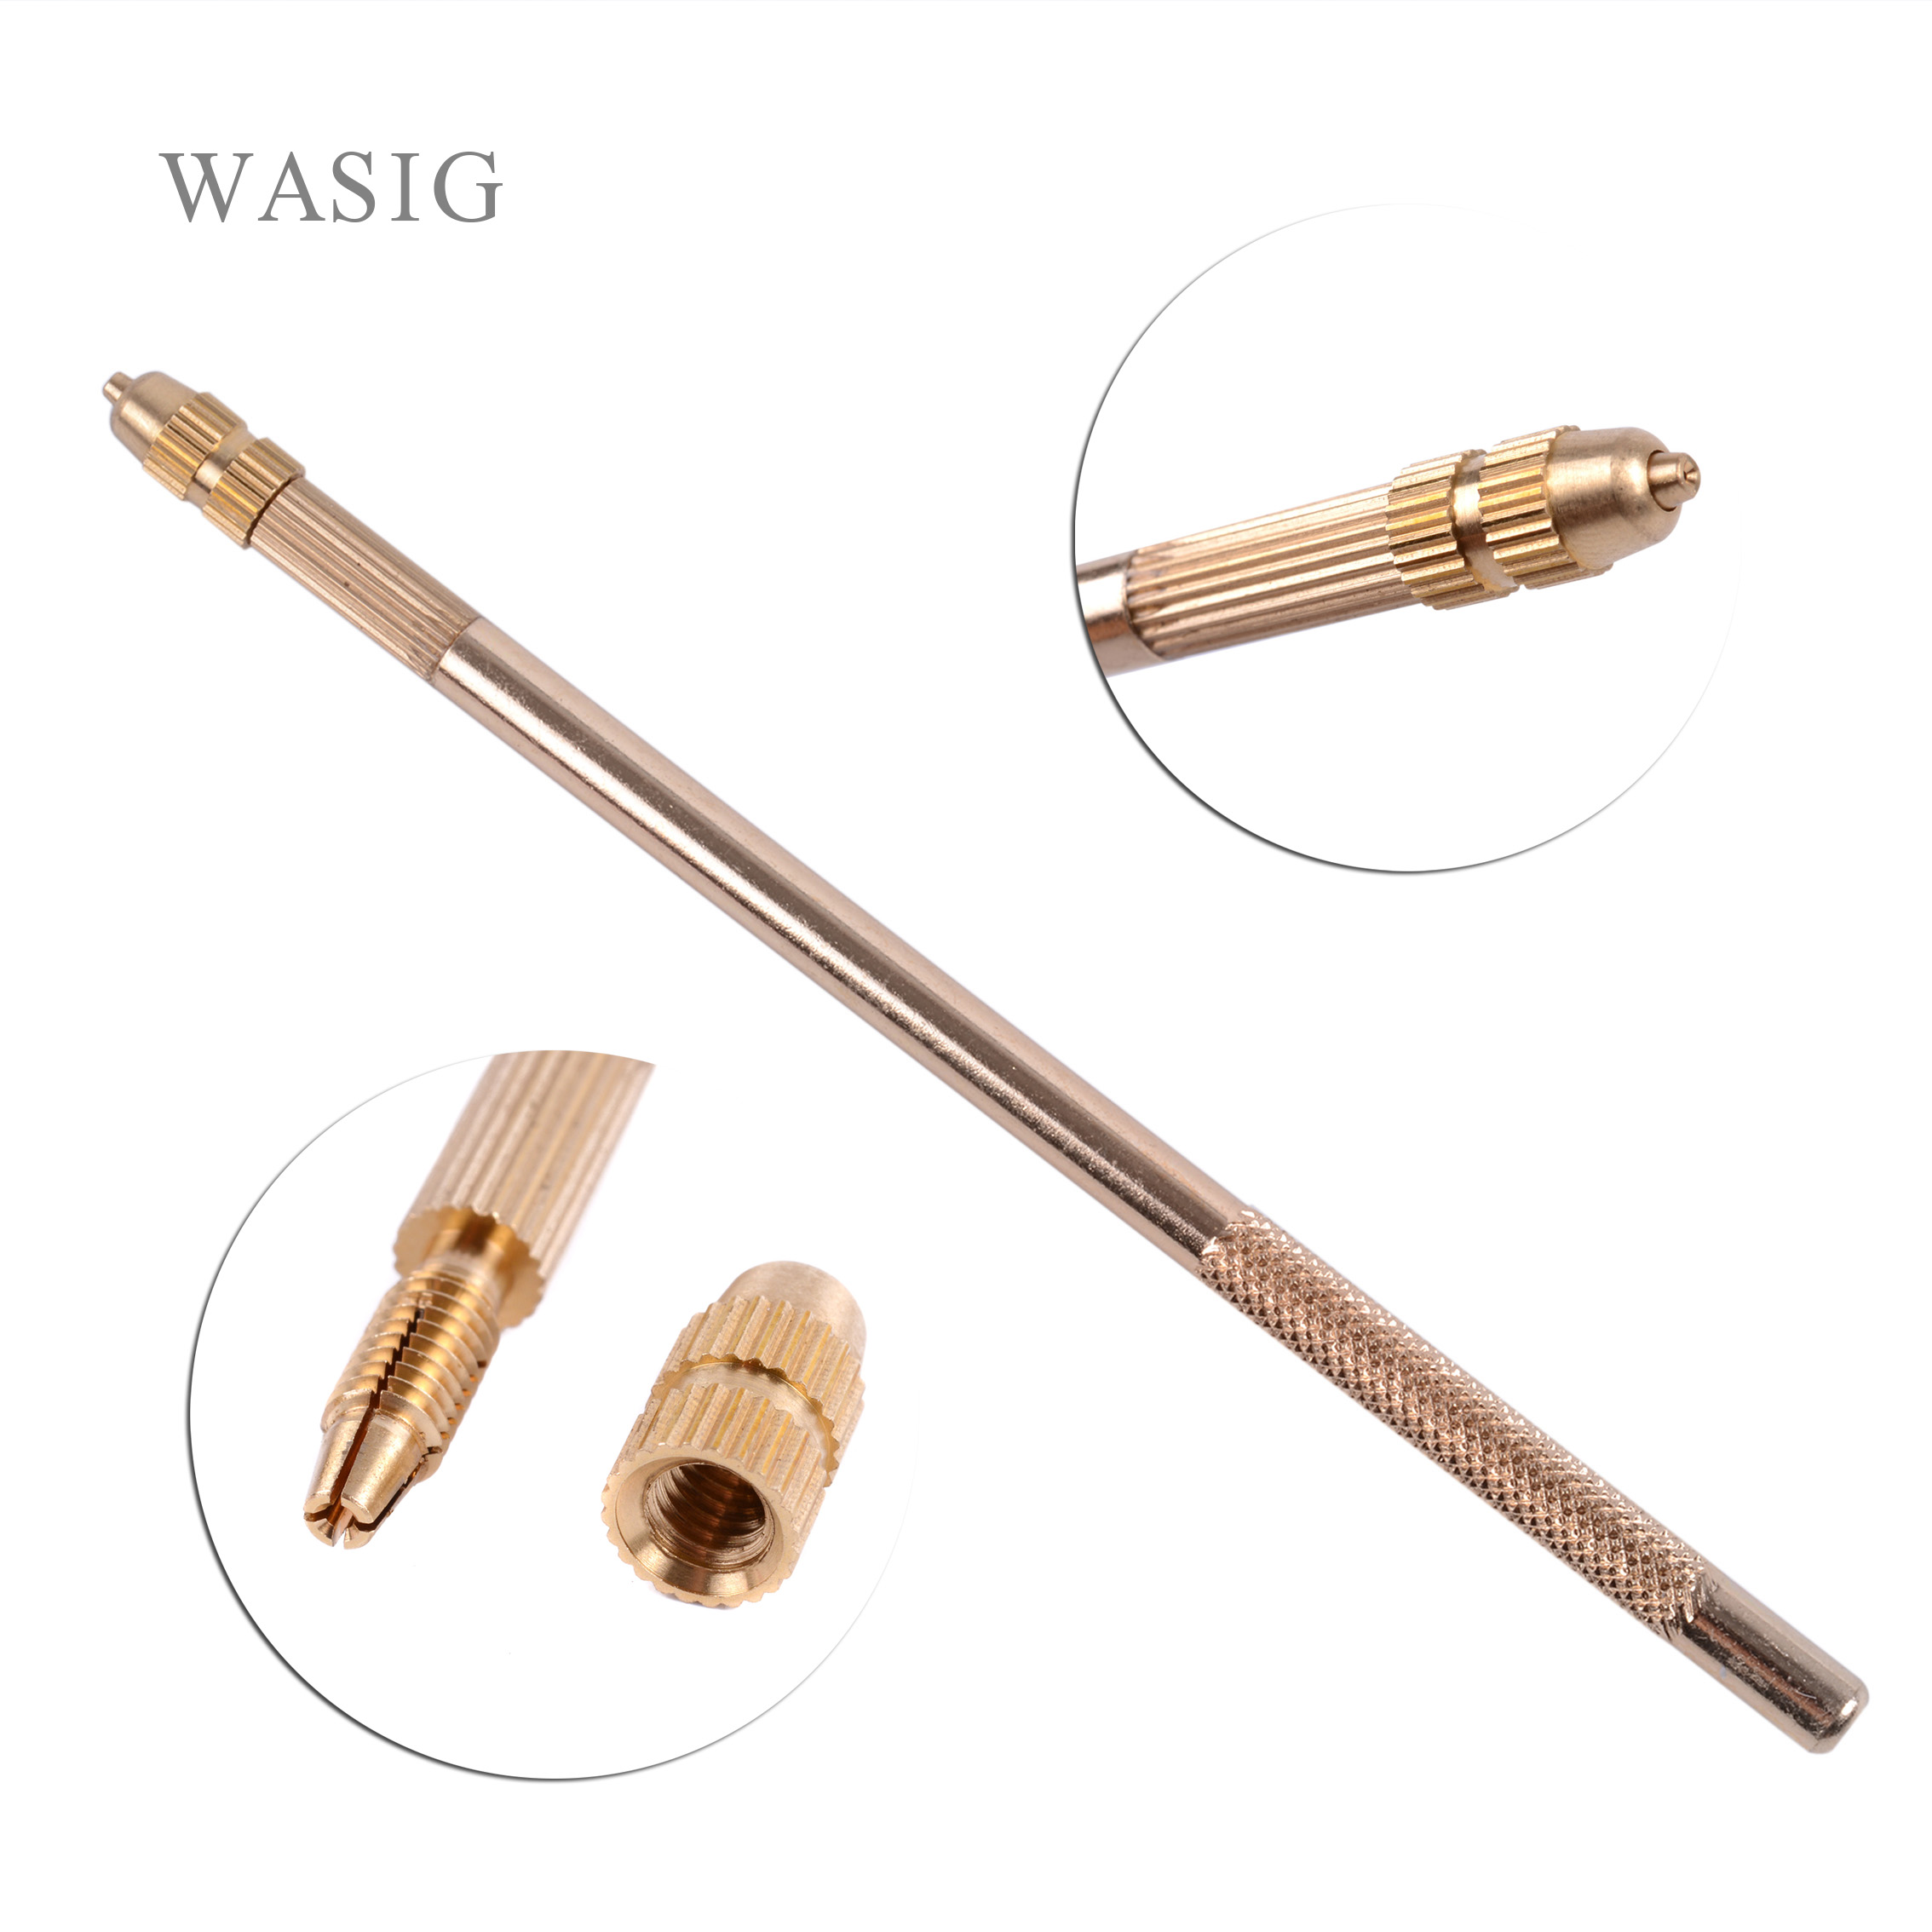 Lace Wig/Toupee Ventilating Holder Hook Needle Handle- Make Or Repair Lace Wig Yourself , Easy To Use